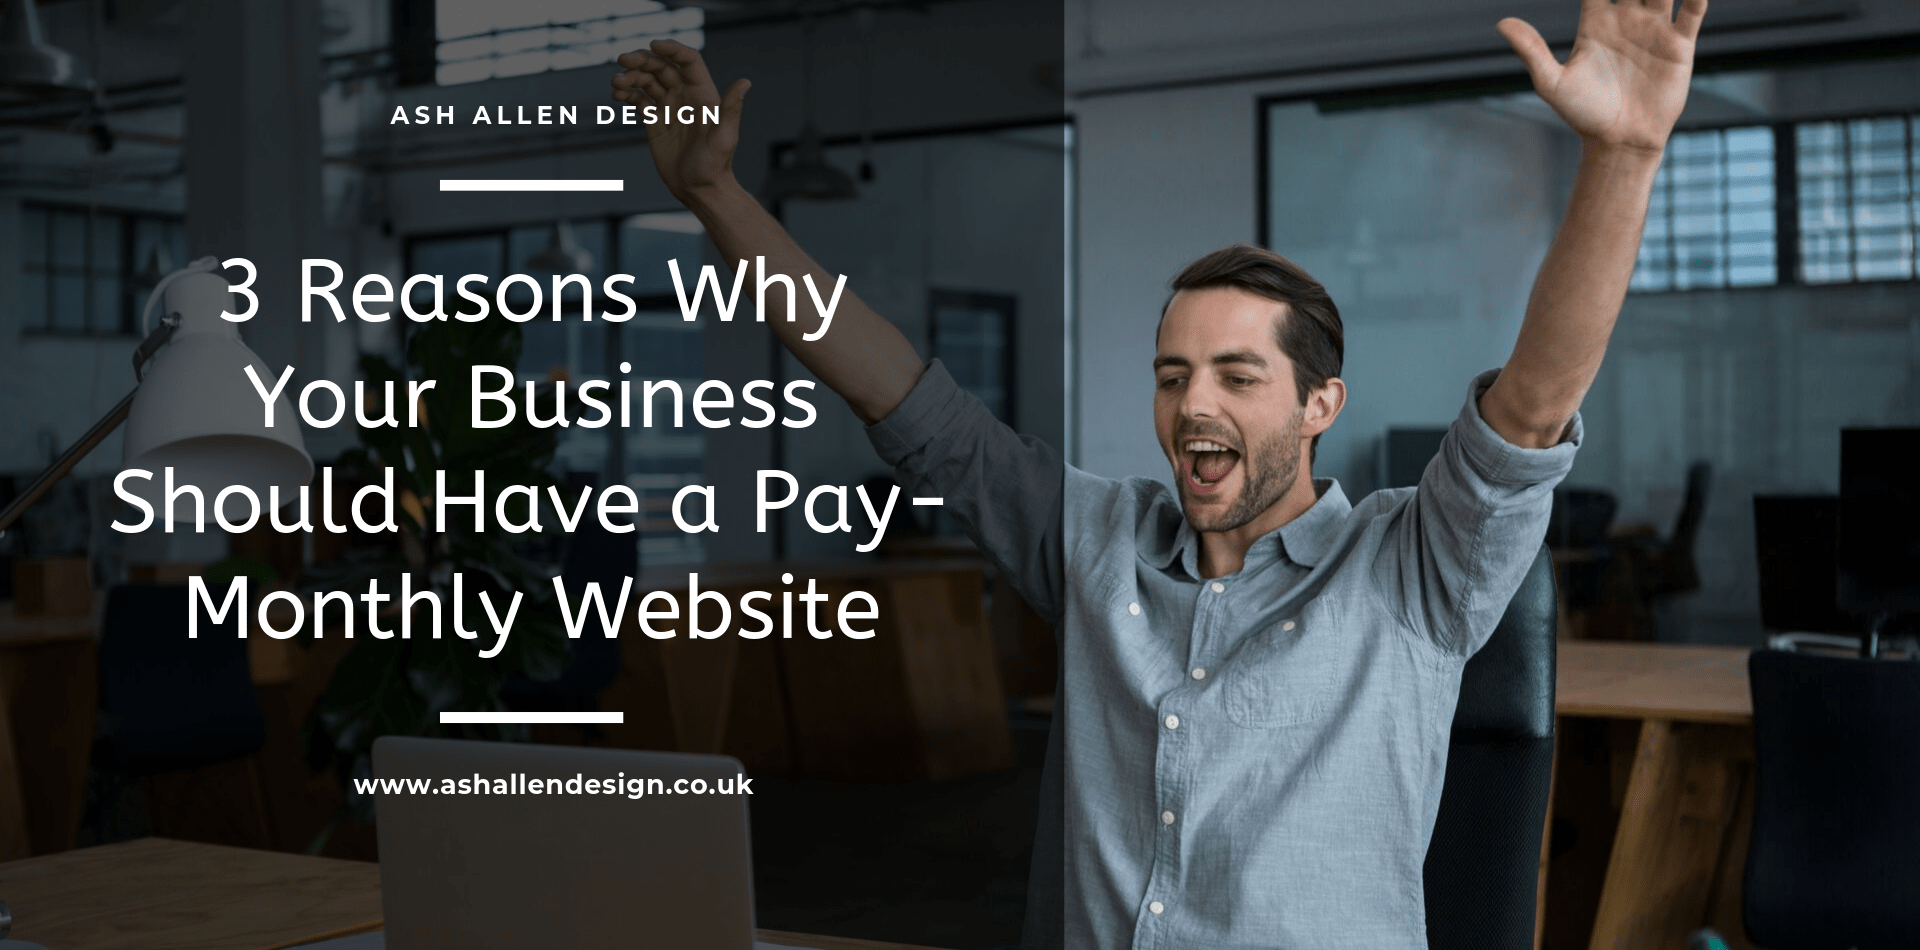 Getting a pay-monthly website for your small business may help you to grow your online presence. Starting from only £19.99 per month.